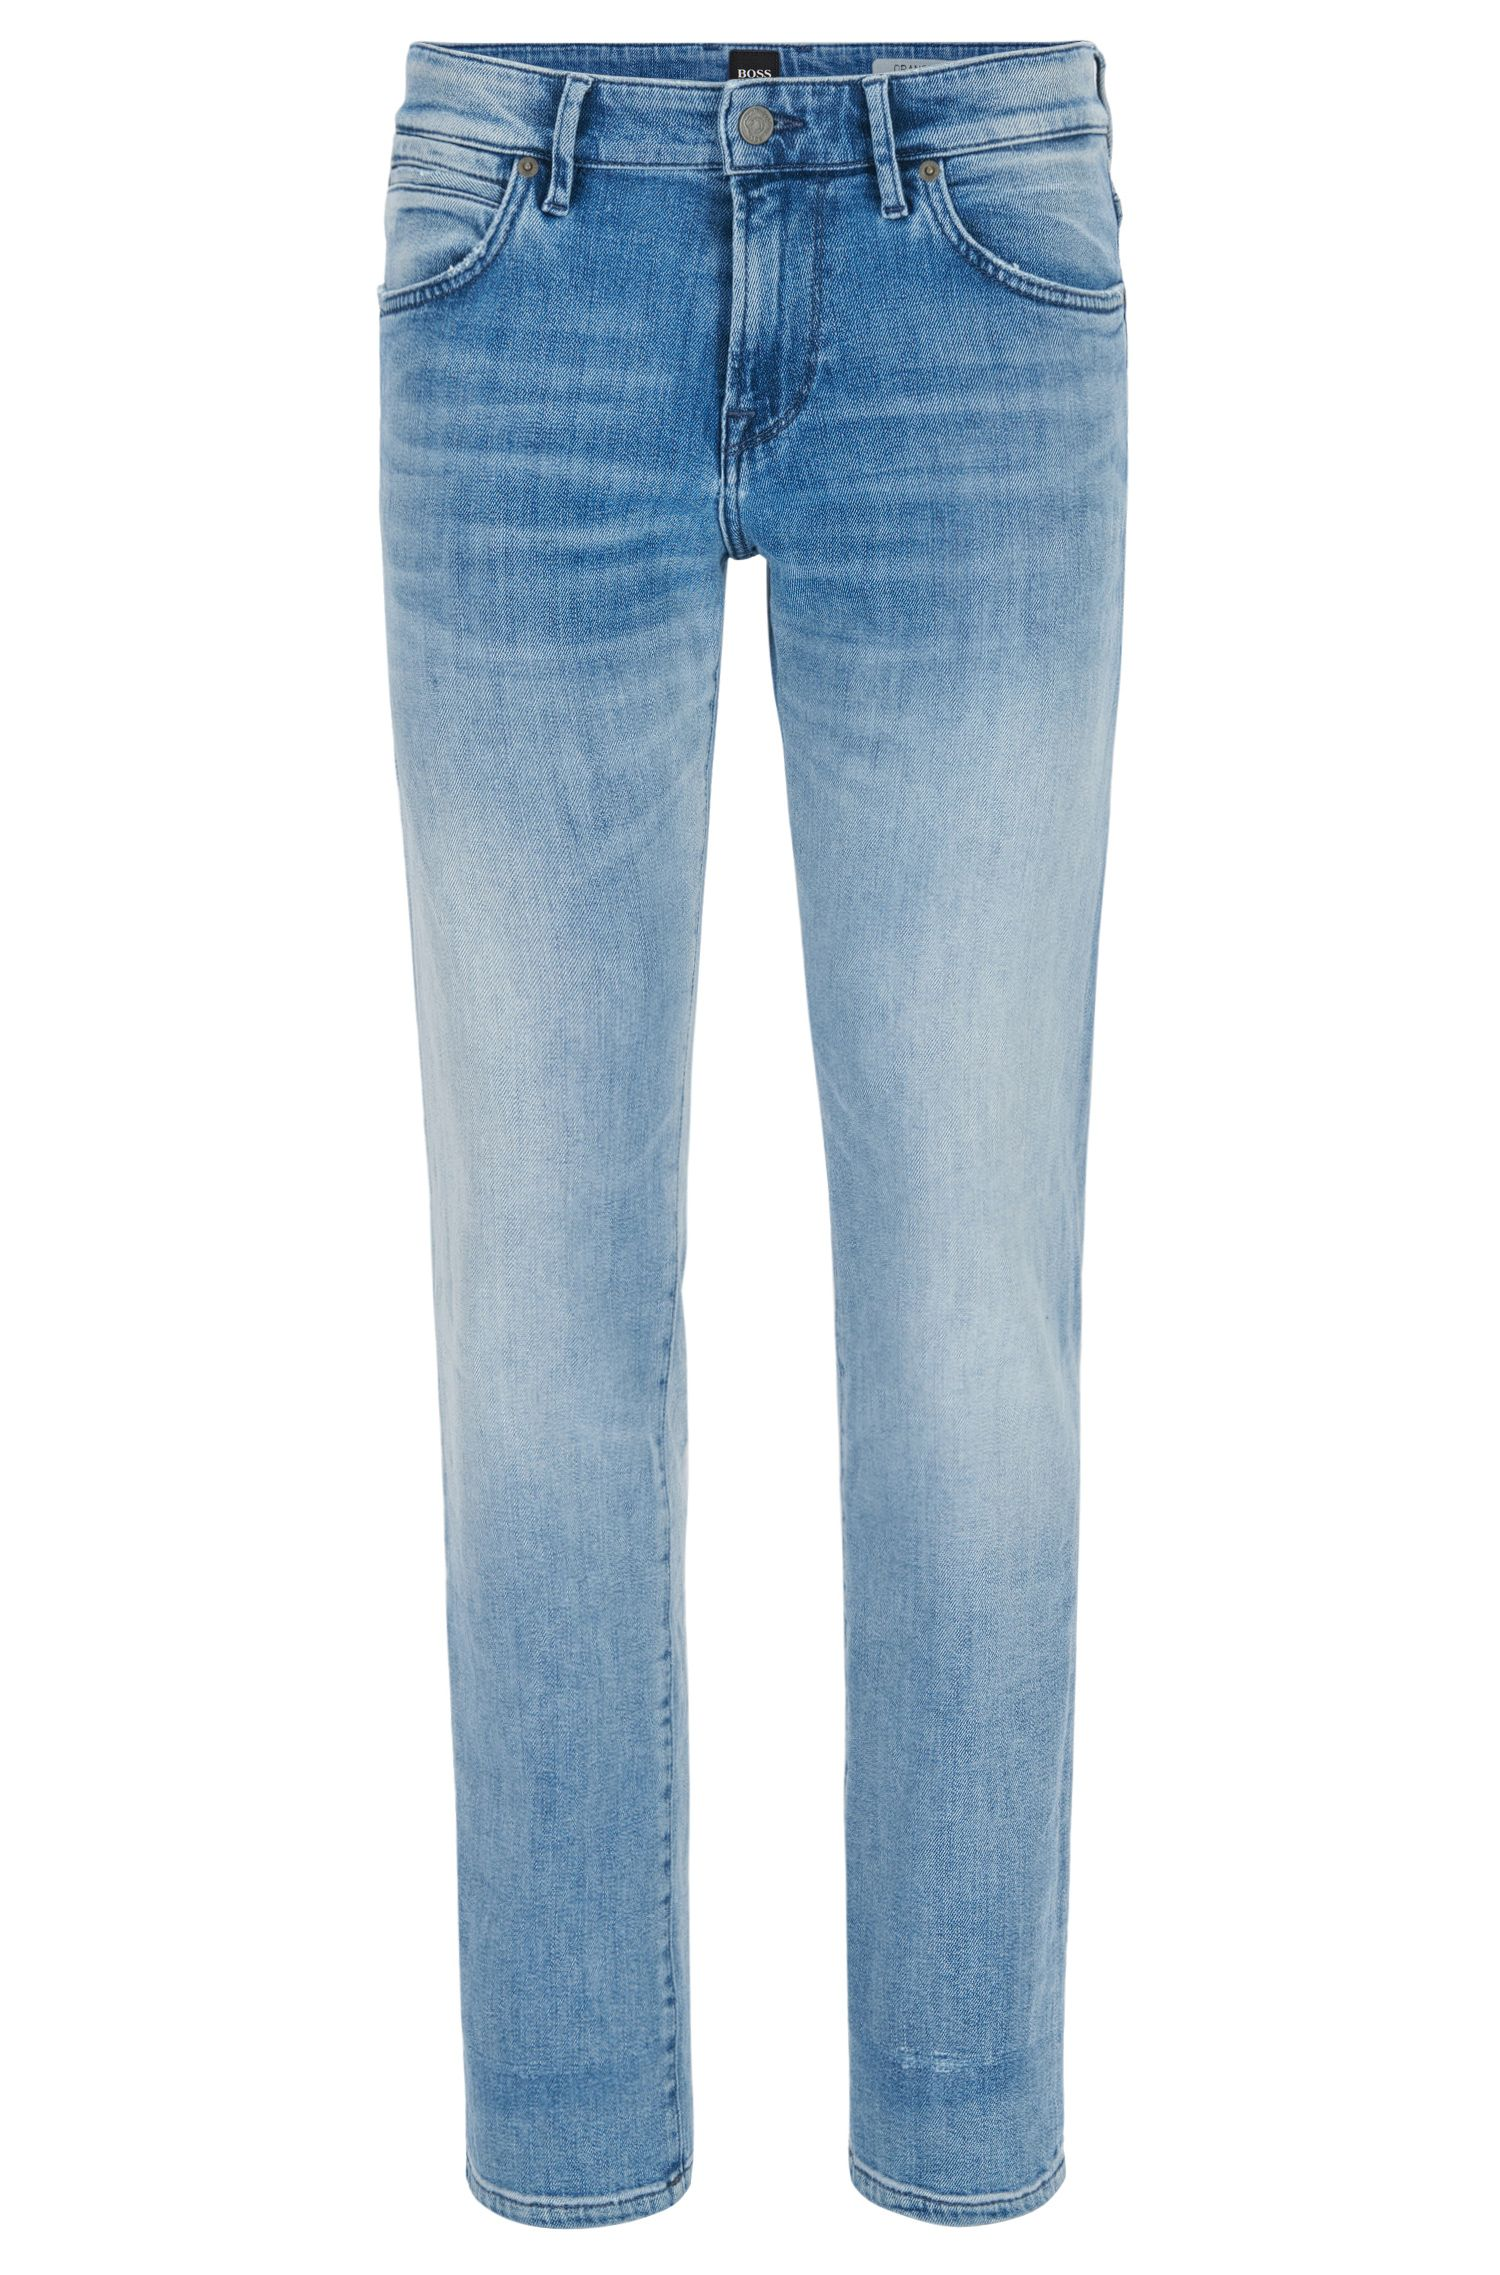 Jeans regular fit in denim elasticizzato lavato